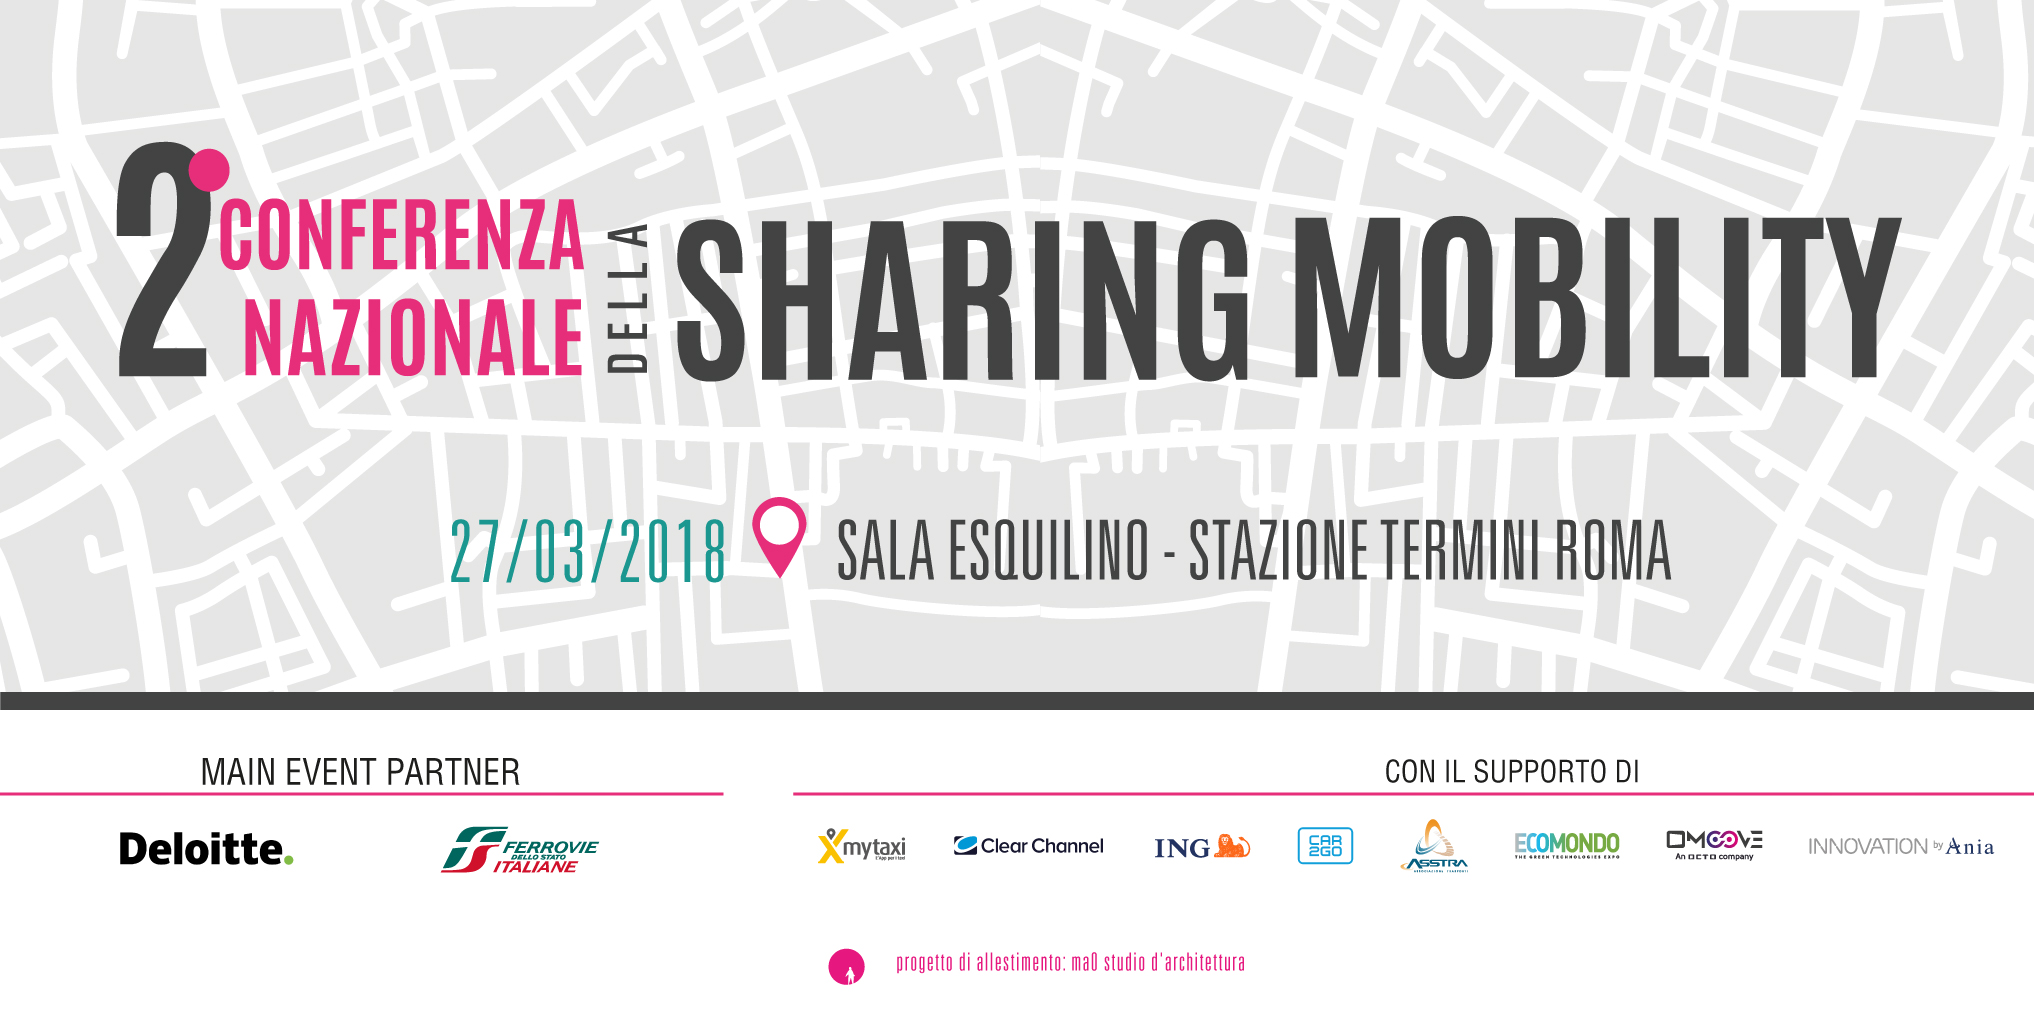 2 CONFERENZA SHARING MOBILITY